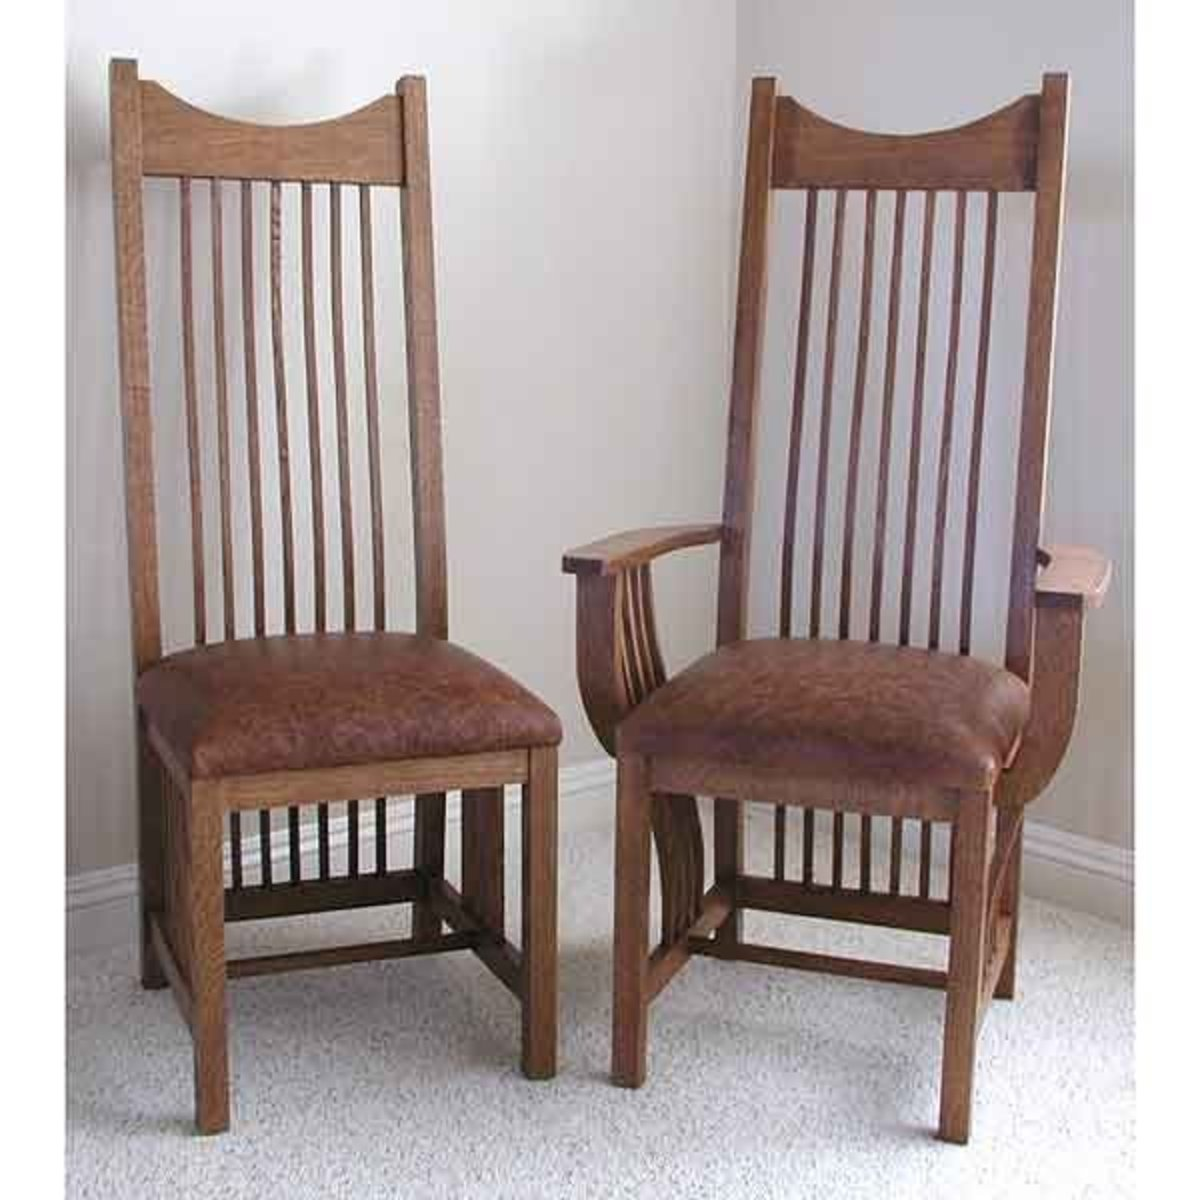 Mission Style Chairs Woodworking Project Paper Plan To Build Mission Style